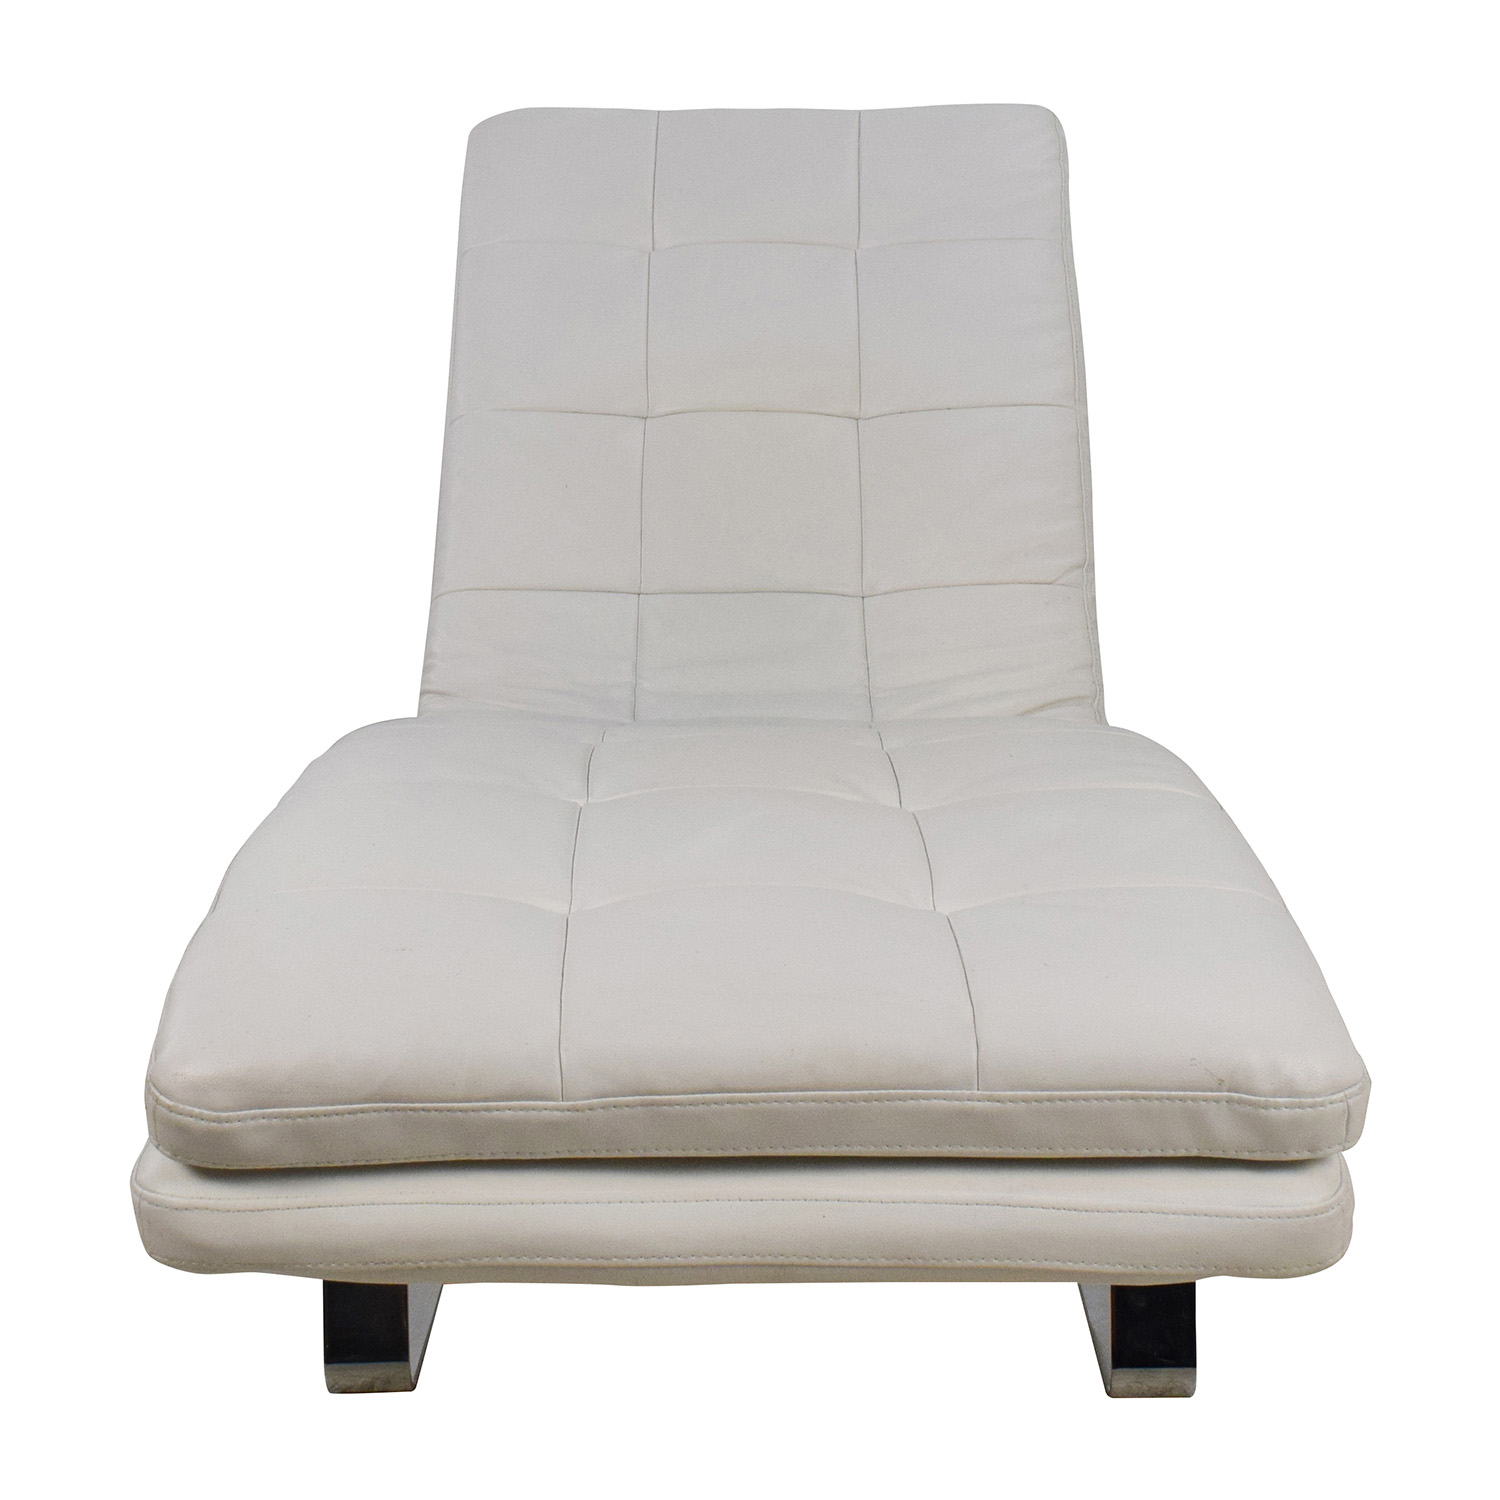 Faux Leather Quilted White Lounger Chaises